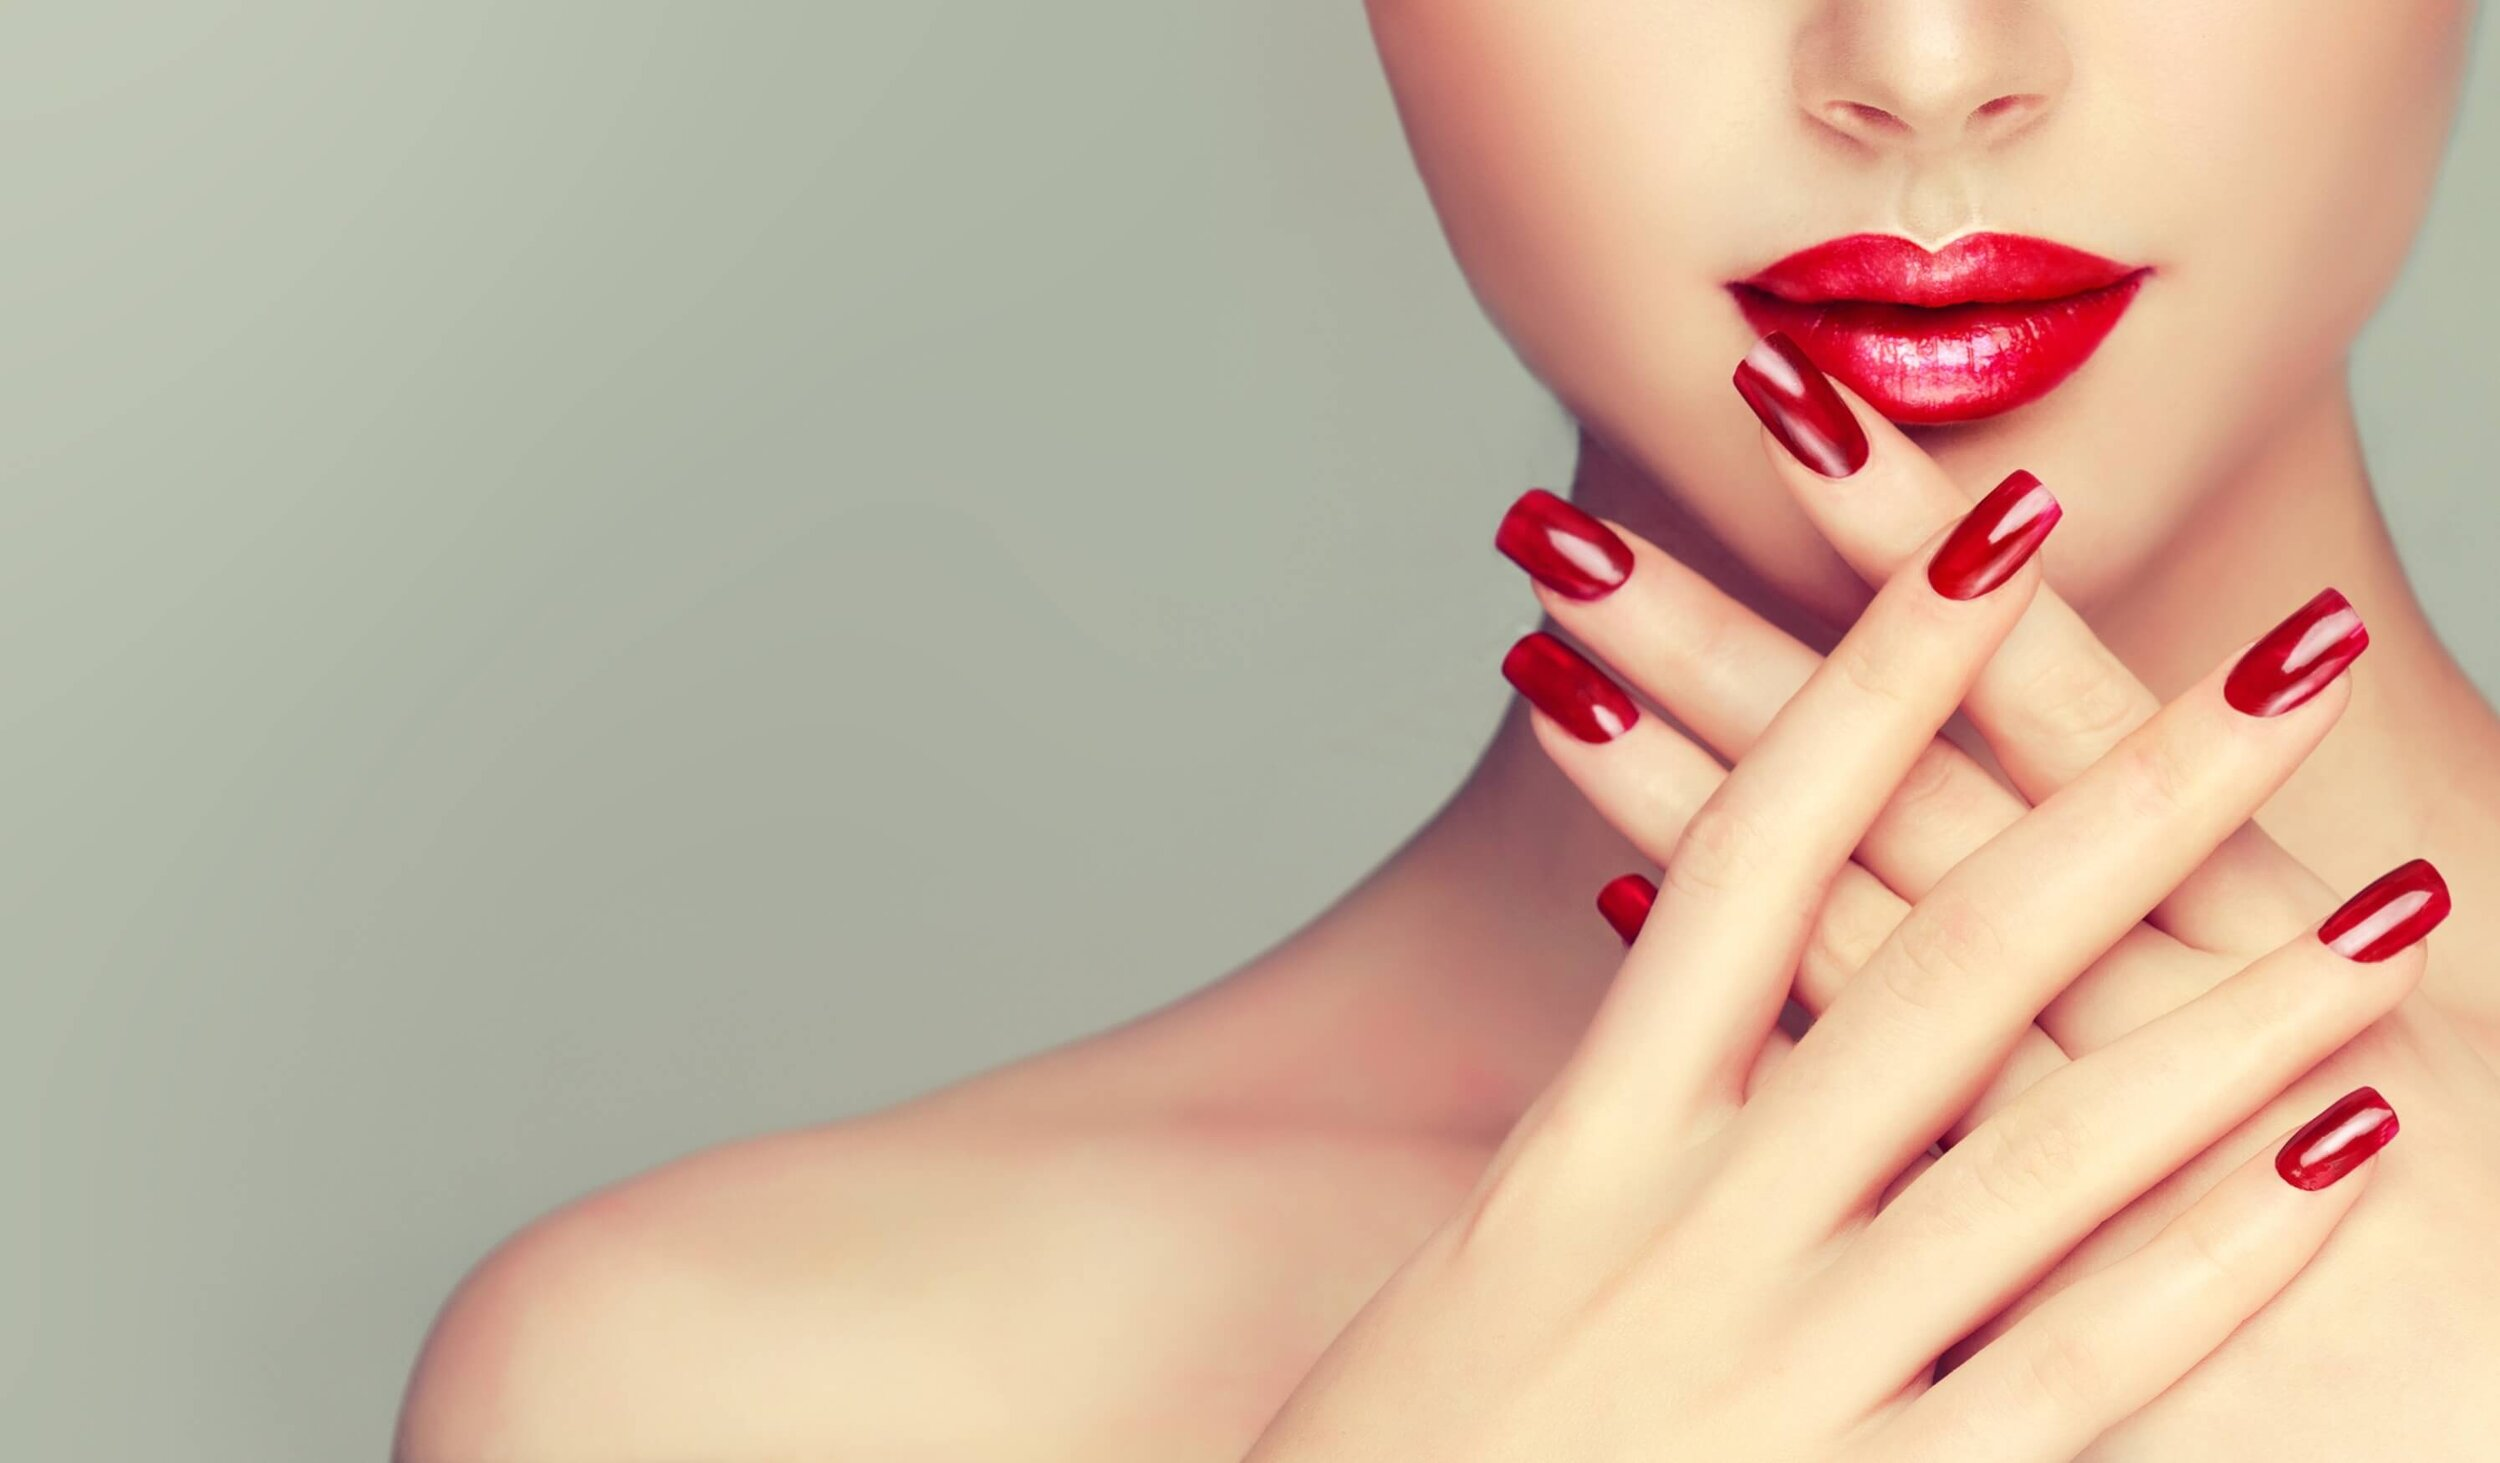 Training Academy - Kick start your career in Nails with several training courses from a general back to basics refresher to one and two days courses on the art of acrylics, gel design and nail polish.